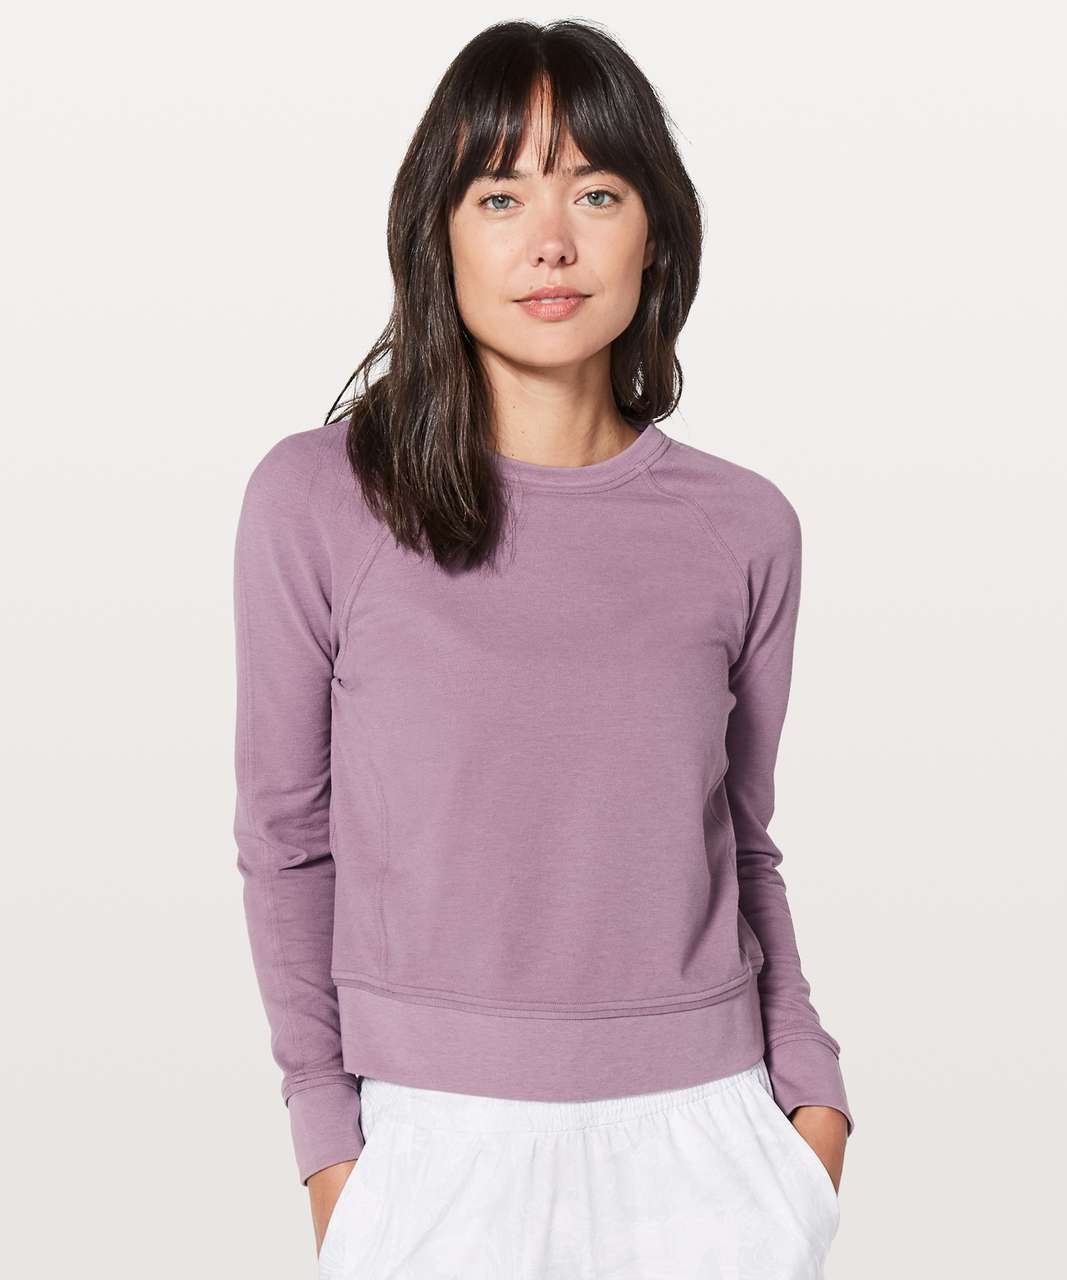 Lululemon Every Moment Crew - Vintage Quartz